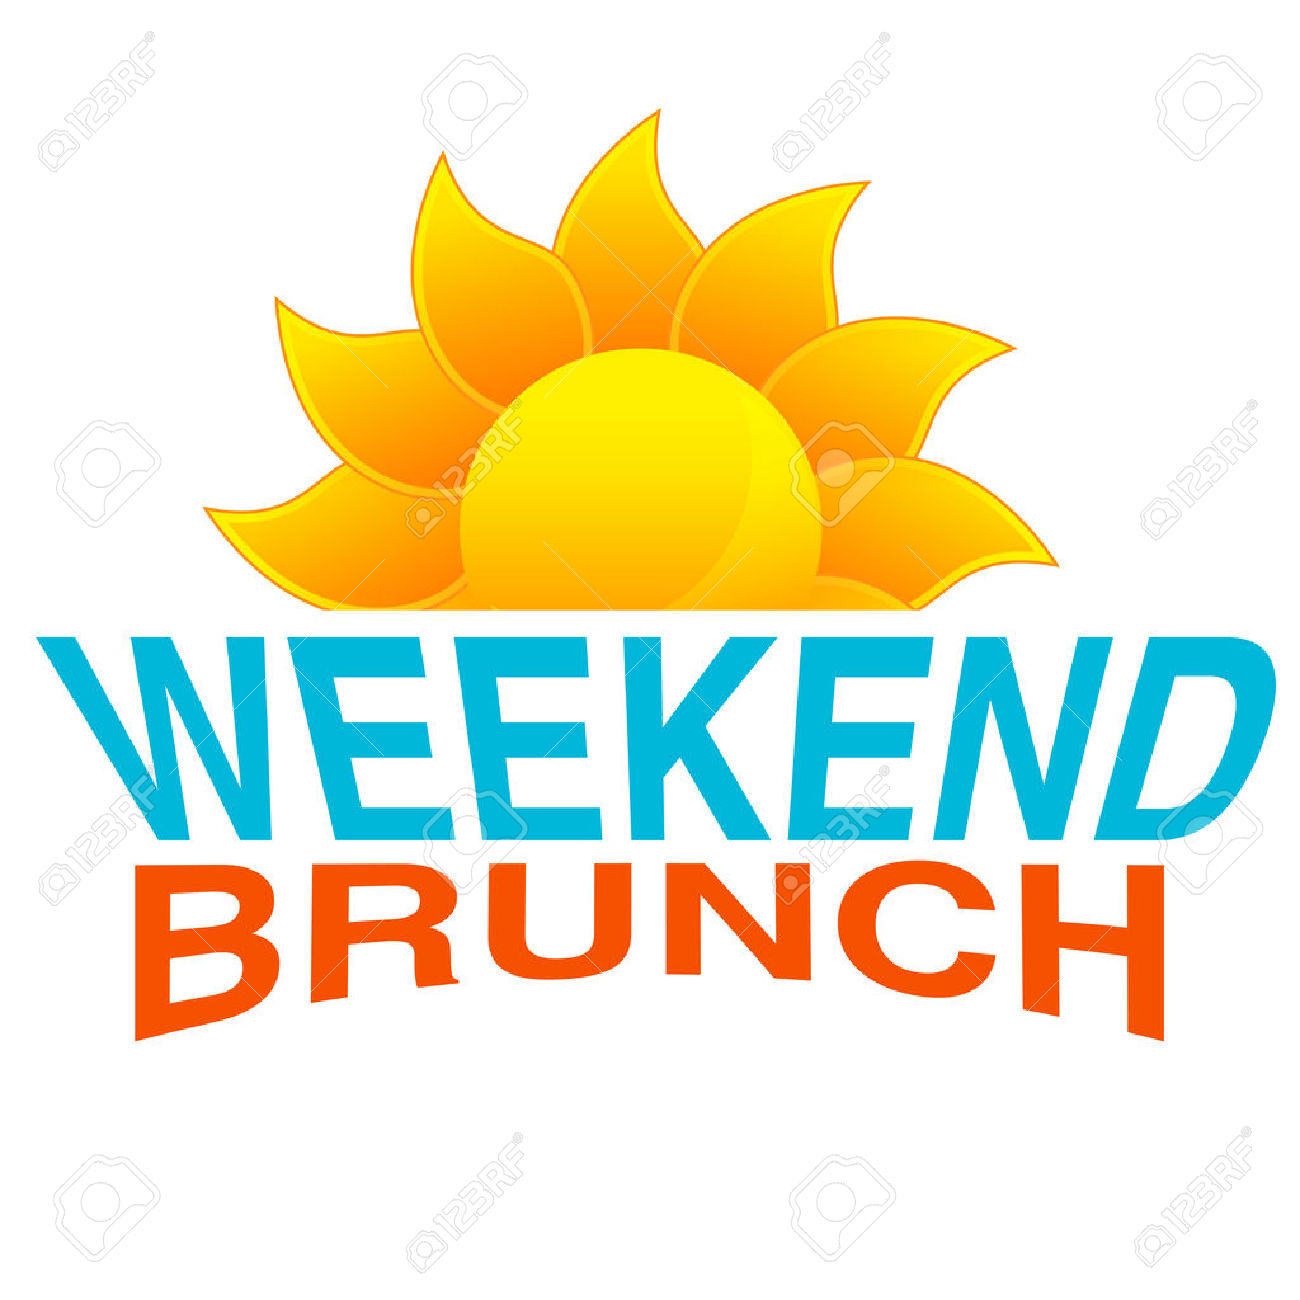 Brunch clipart saturday. Free download best on